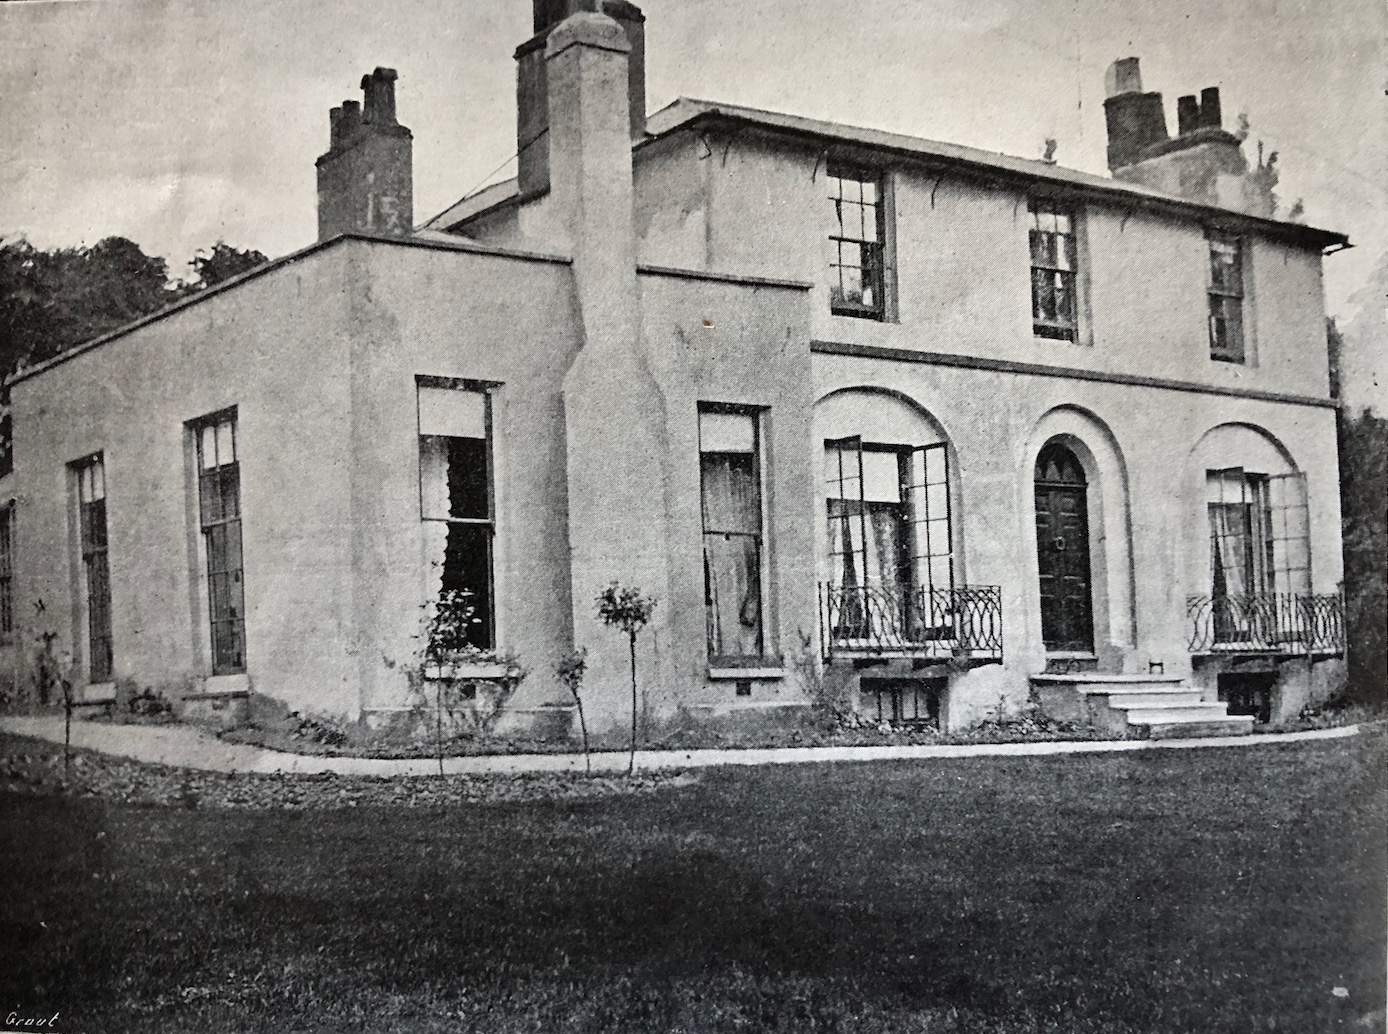 Wentworth Place, from a photograph supplied by H. Buxton Forman to the         Keats-Shelley Memorial Souvenir, 1912